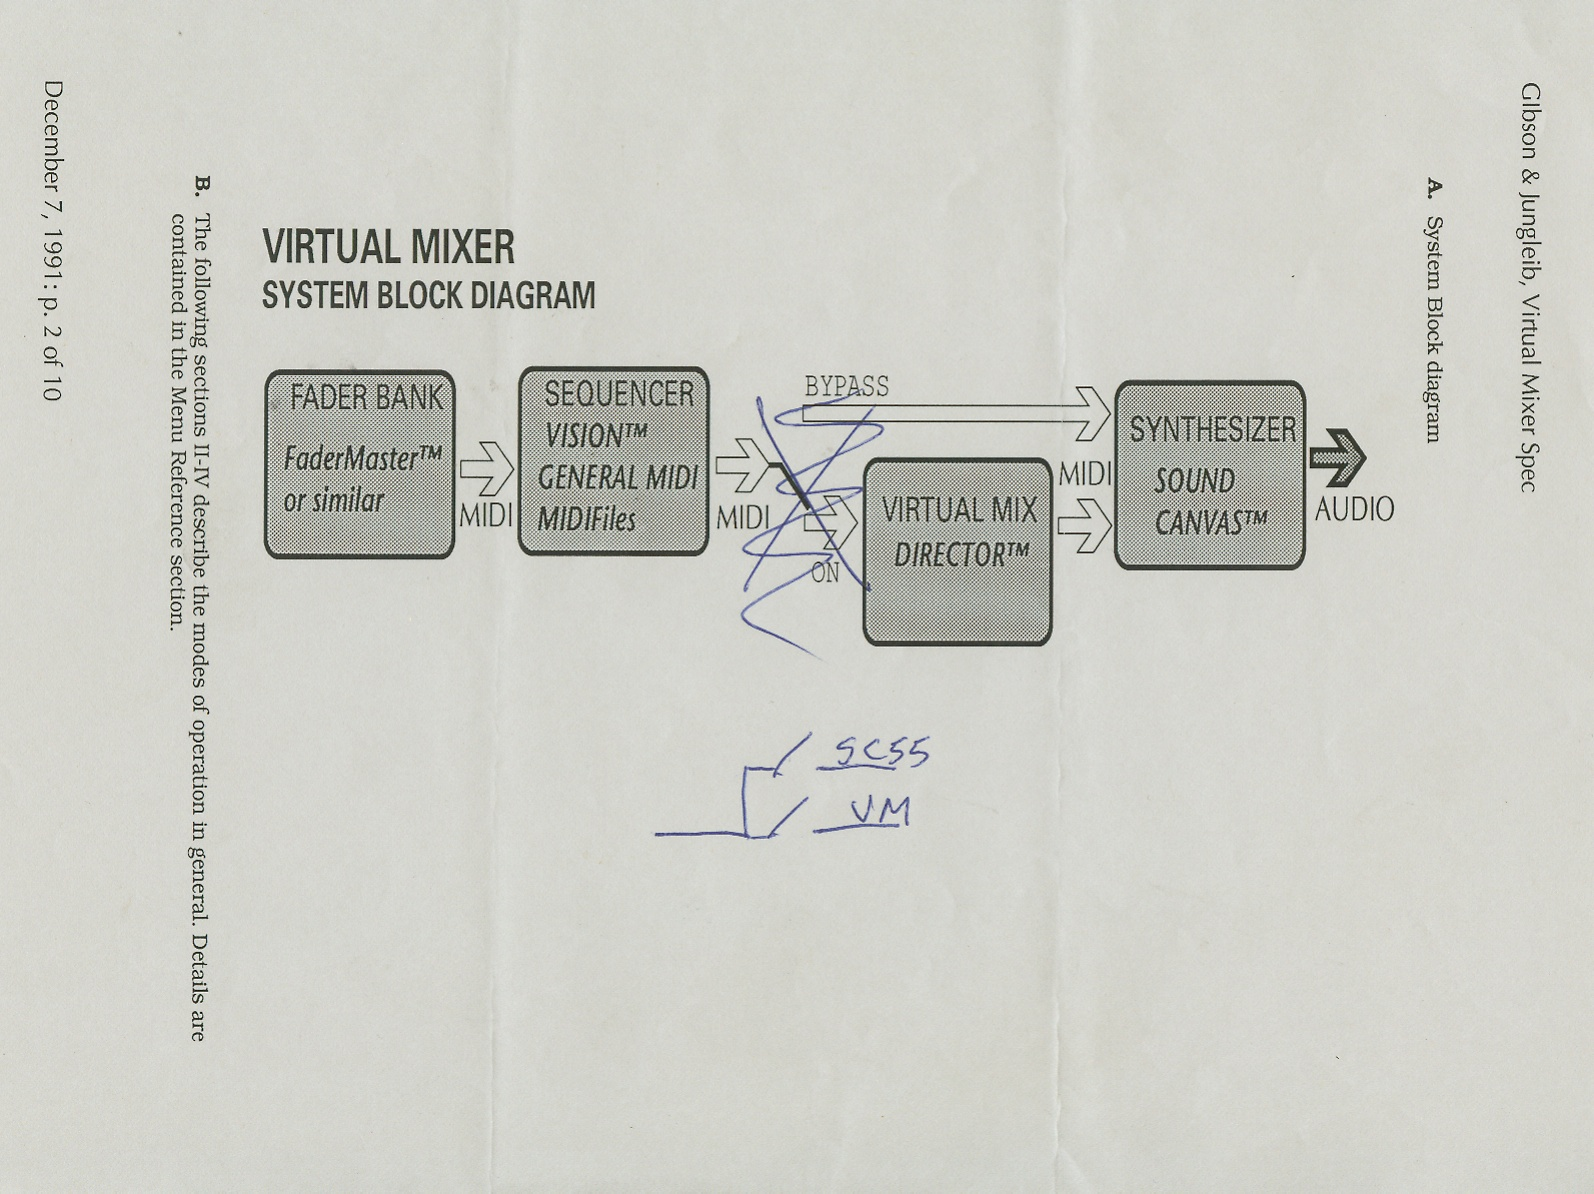 911207 VIRTUAL MIXER PG02